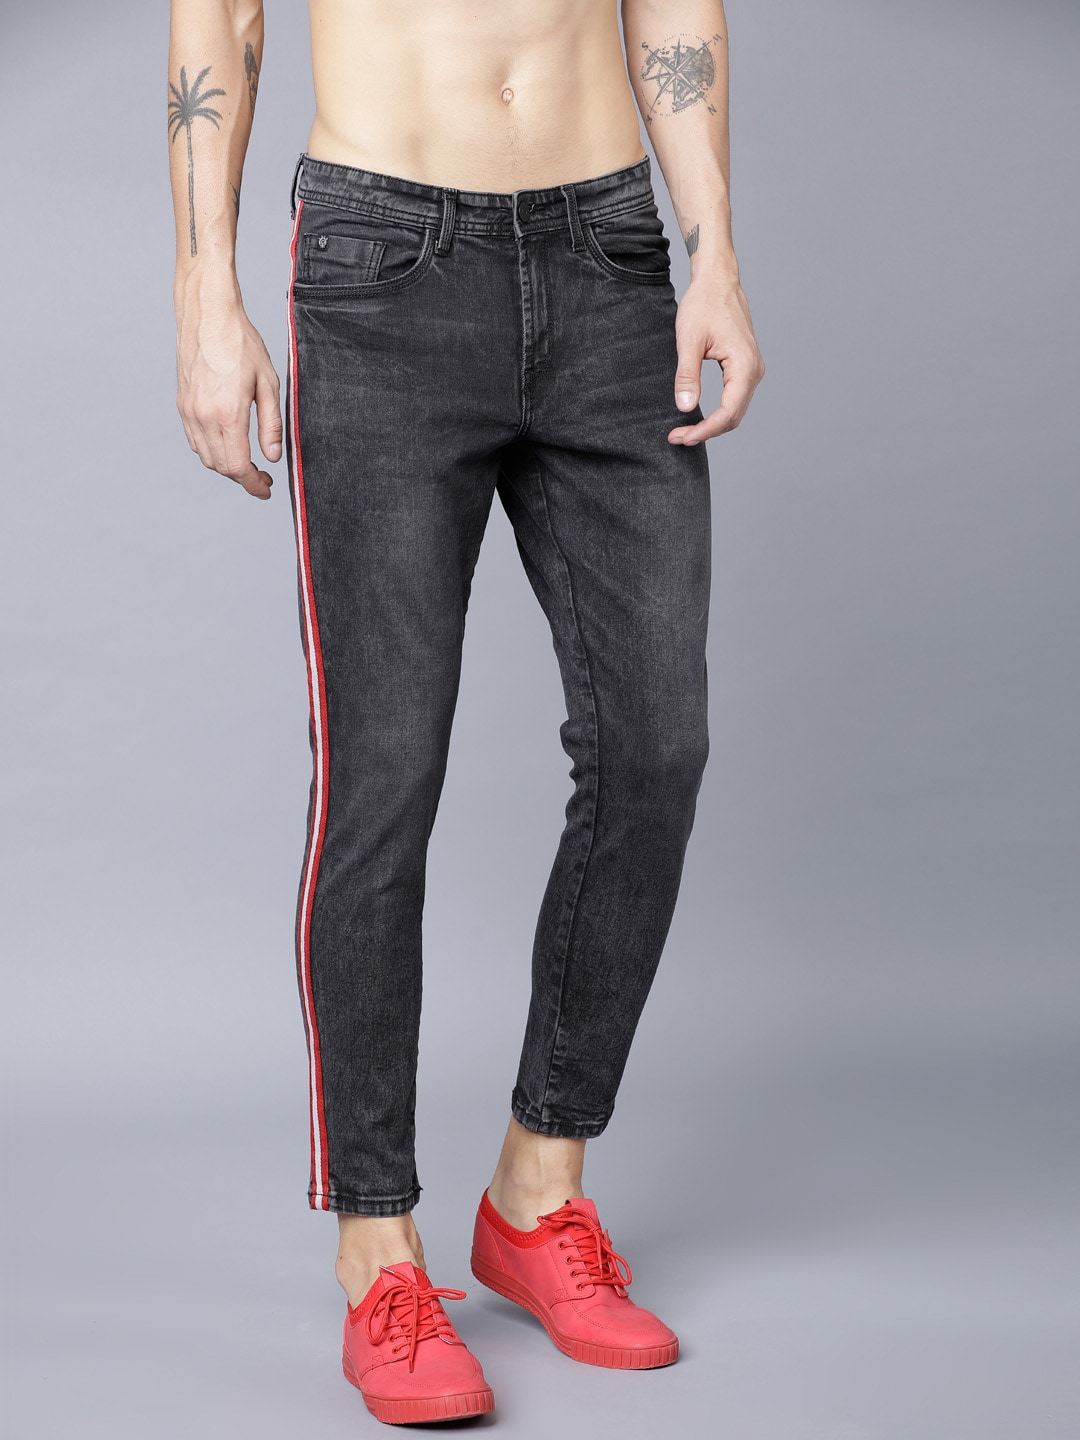 7d0d94ac3b7c Tapered Jeans - Buy Tapered Jeans Online in India